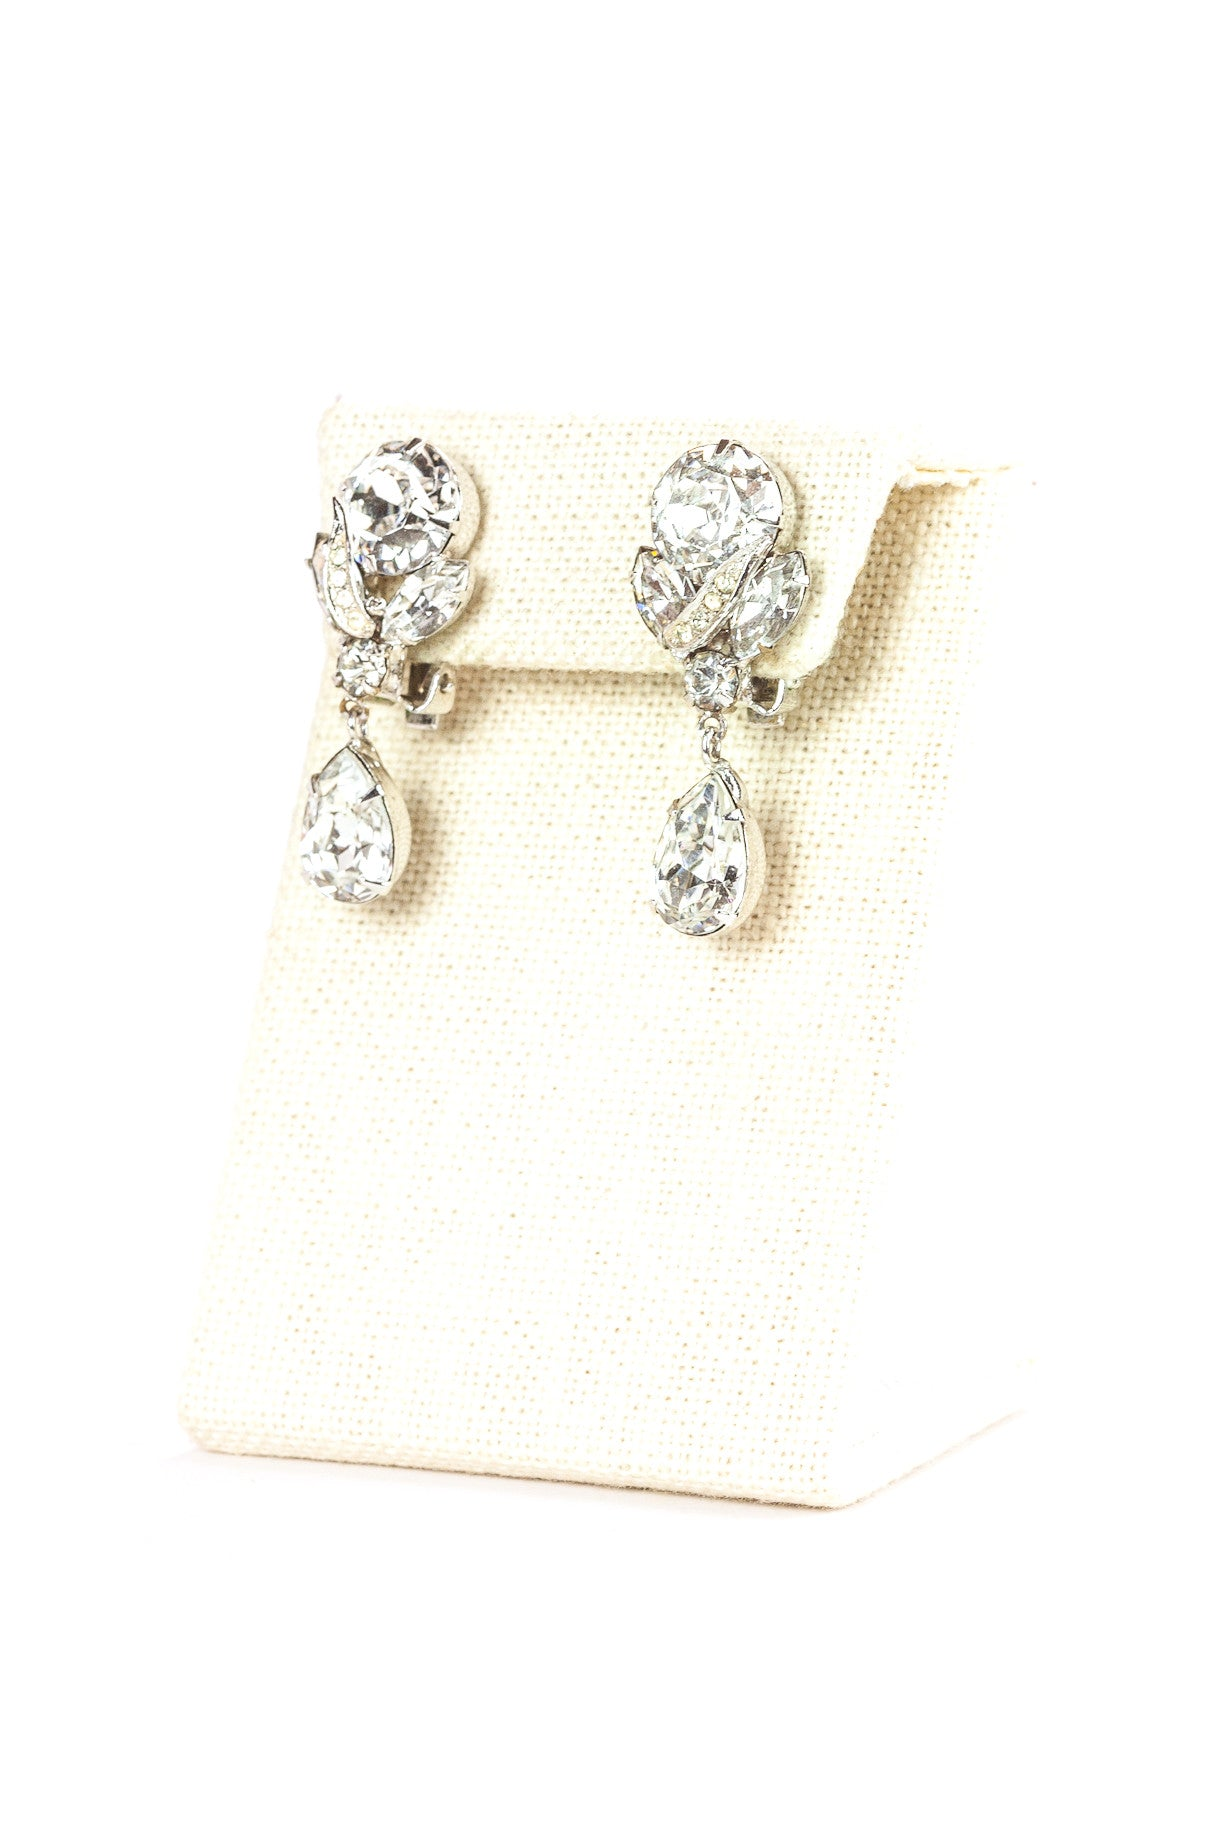 50's__Weiss__Dainty Rhinestone Drop Earrings